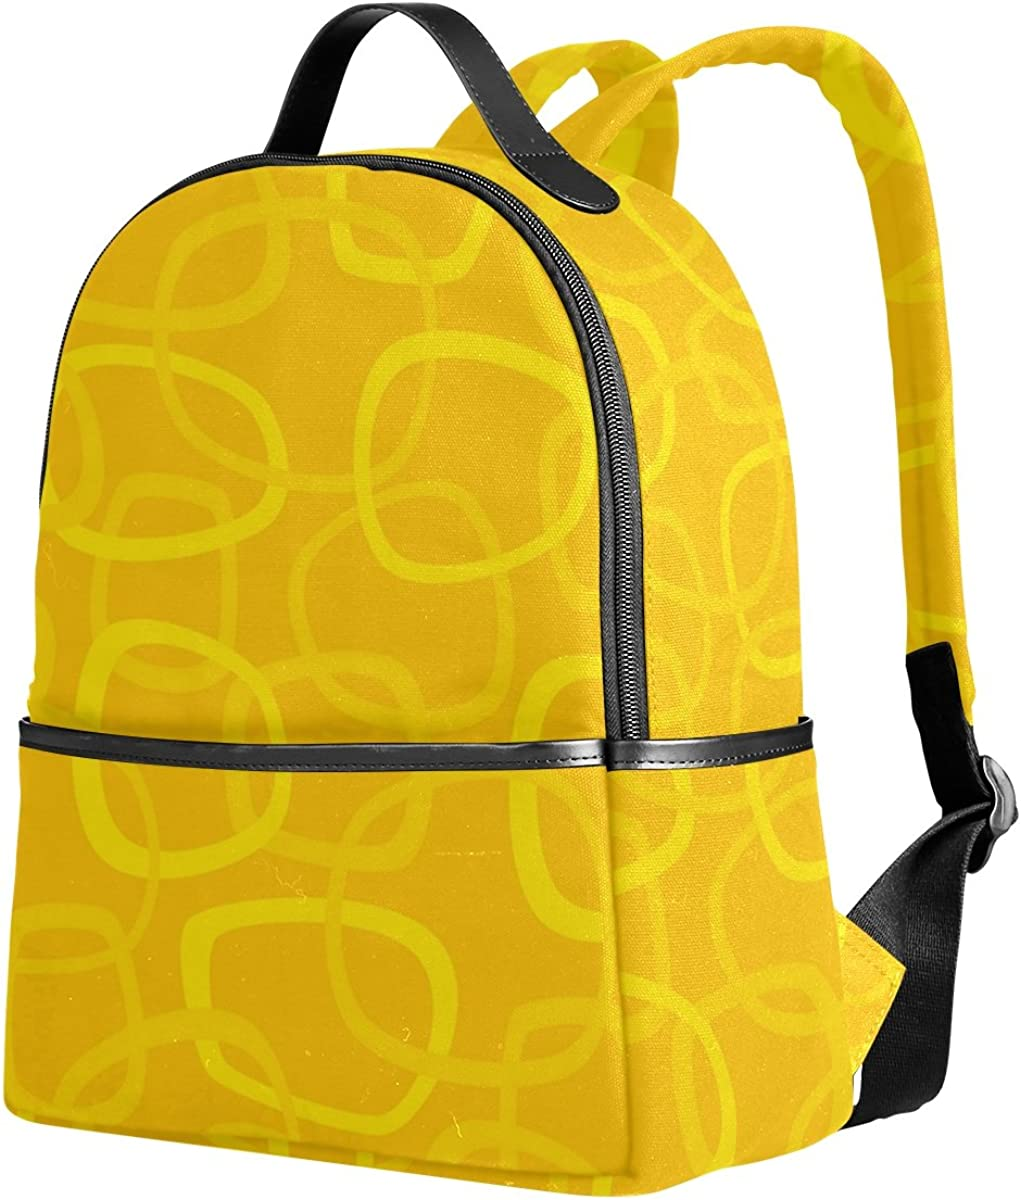 Mr.Weng Pubble Printed Canvas Backpack For Girl and Children